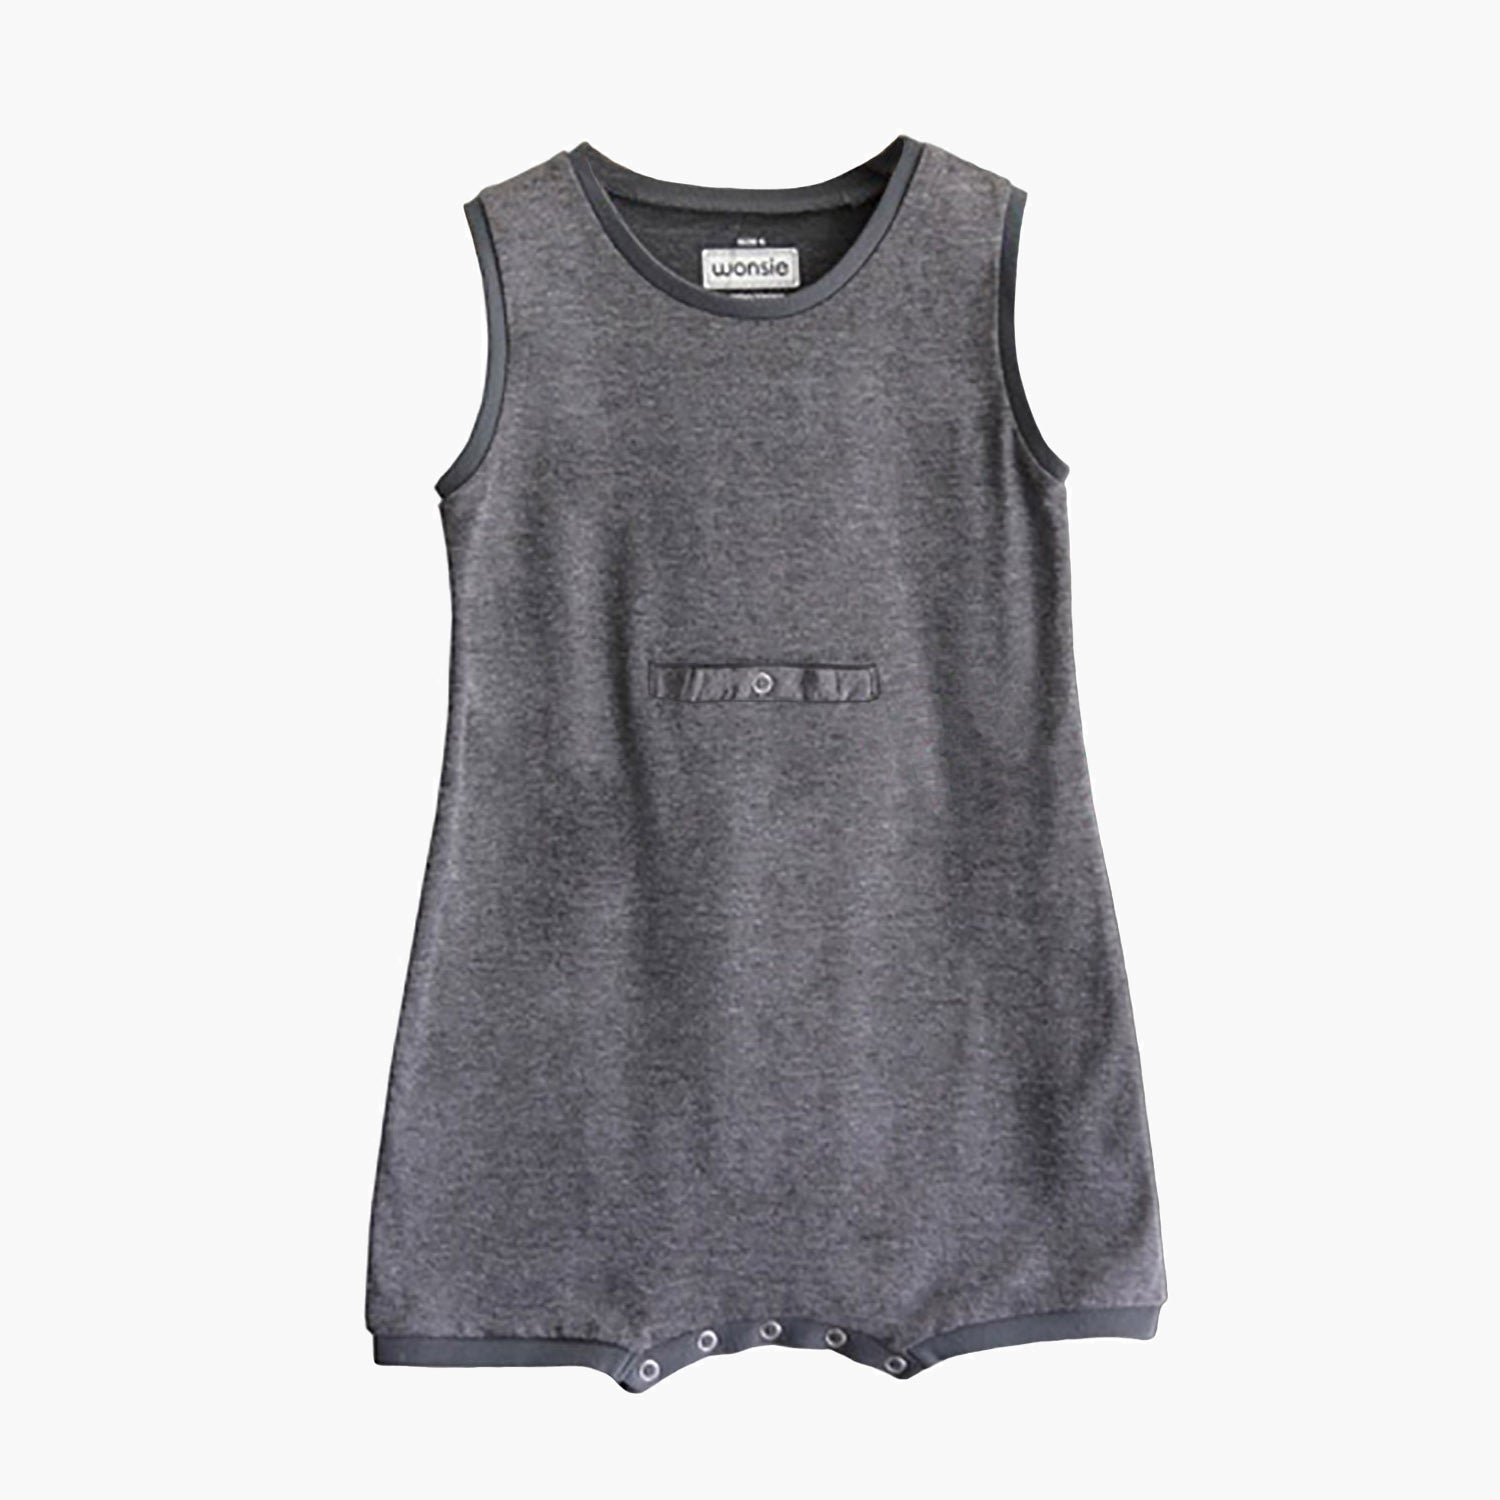 Sleeveless tummy g-tube access Wonsie brand adaptive bodysuit in soft cotton fabric